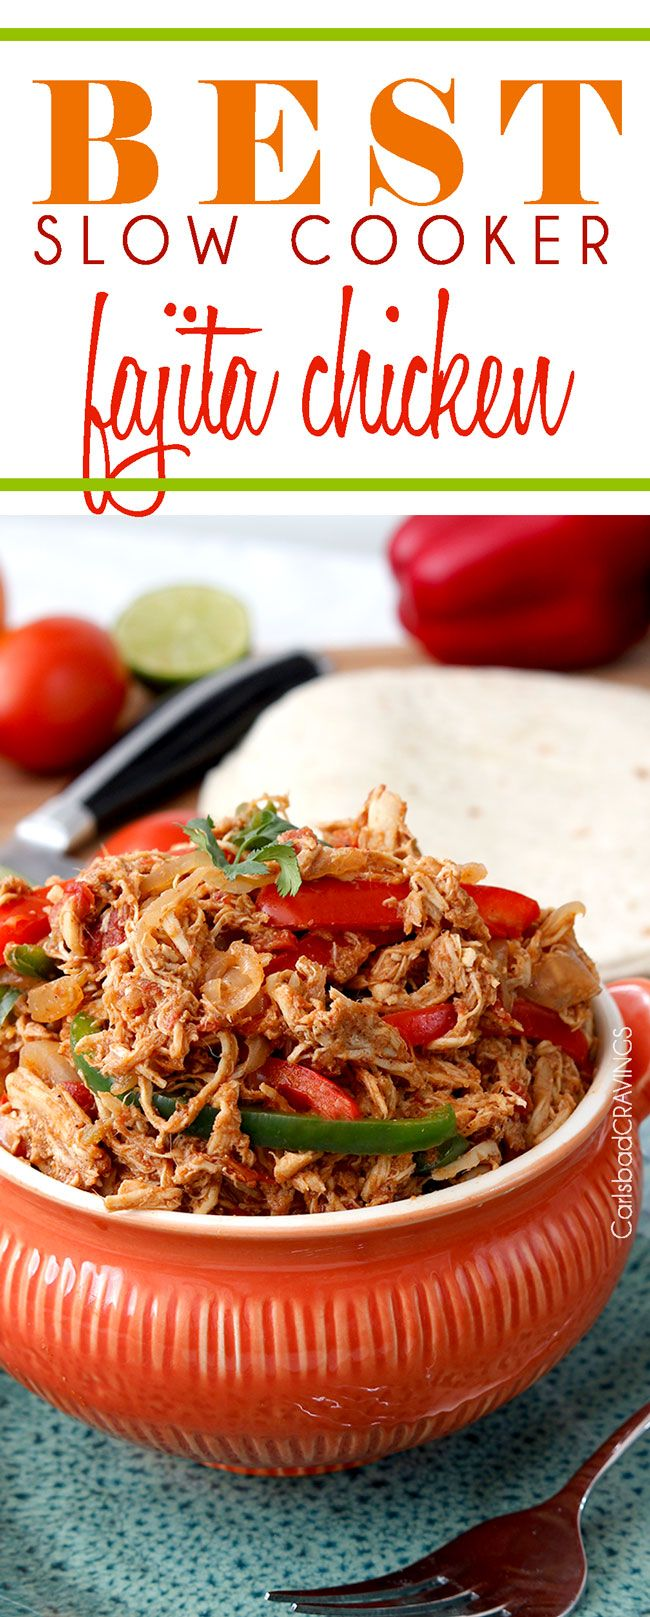 Slow Cooker Fajita Chicken - fall apart tender bursting with spices and SO EASY! the best fajita chicken you will ever eat! Perfect for fajitas, burritos, enchiladas, salads, bowls, etc. and as easy as add all the ingredients to the crockpot! #fajitas #fajitachicken #chickenfajitas #slowcookerfajitachicken